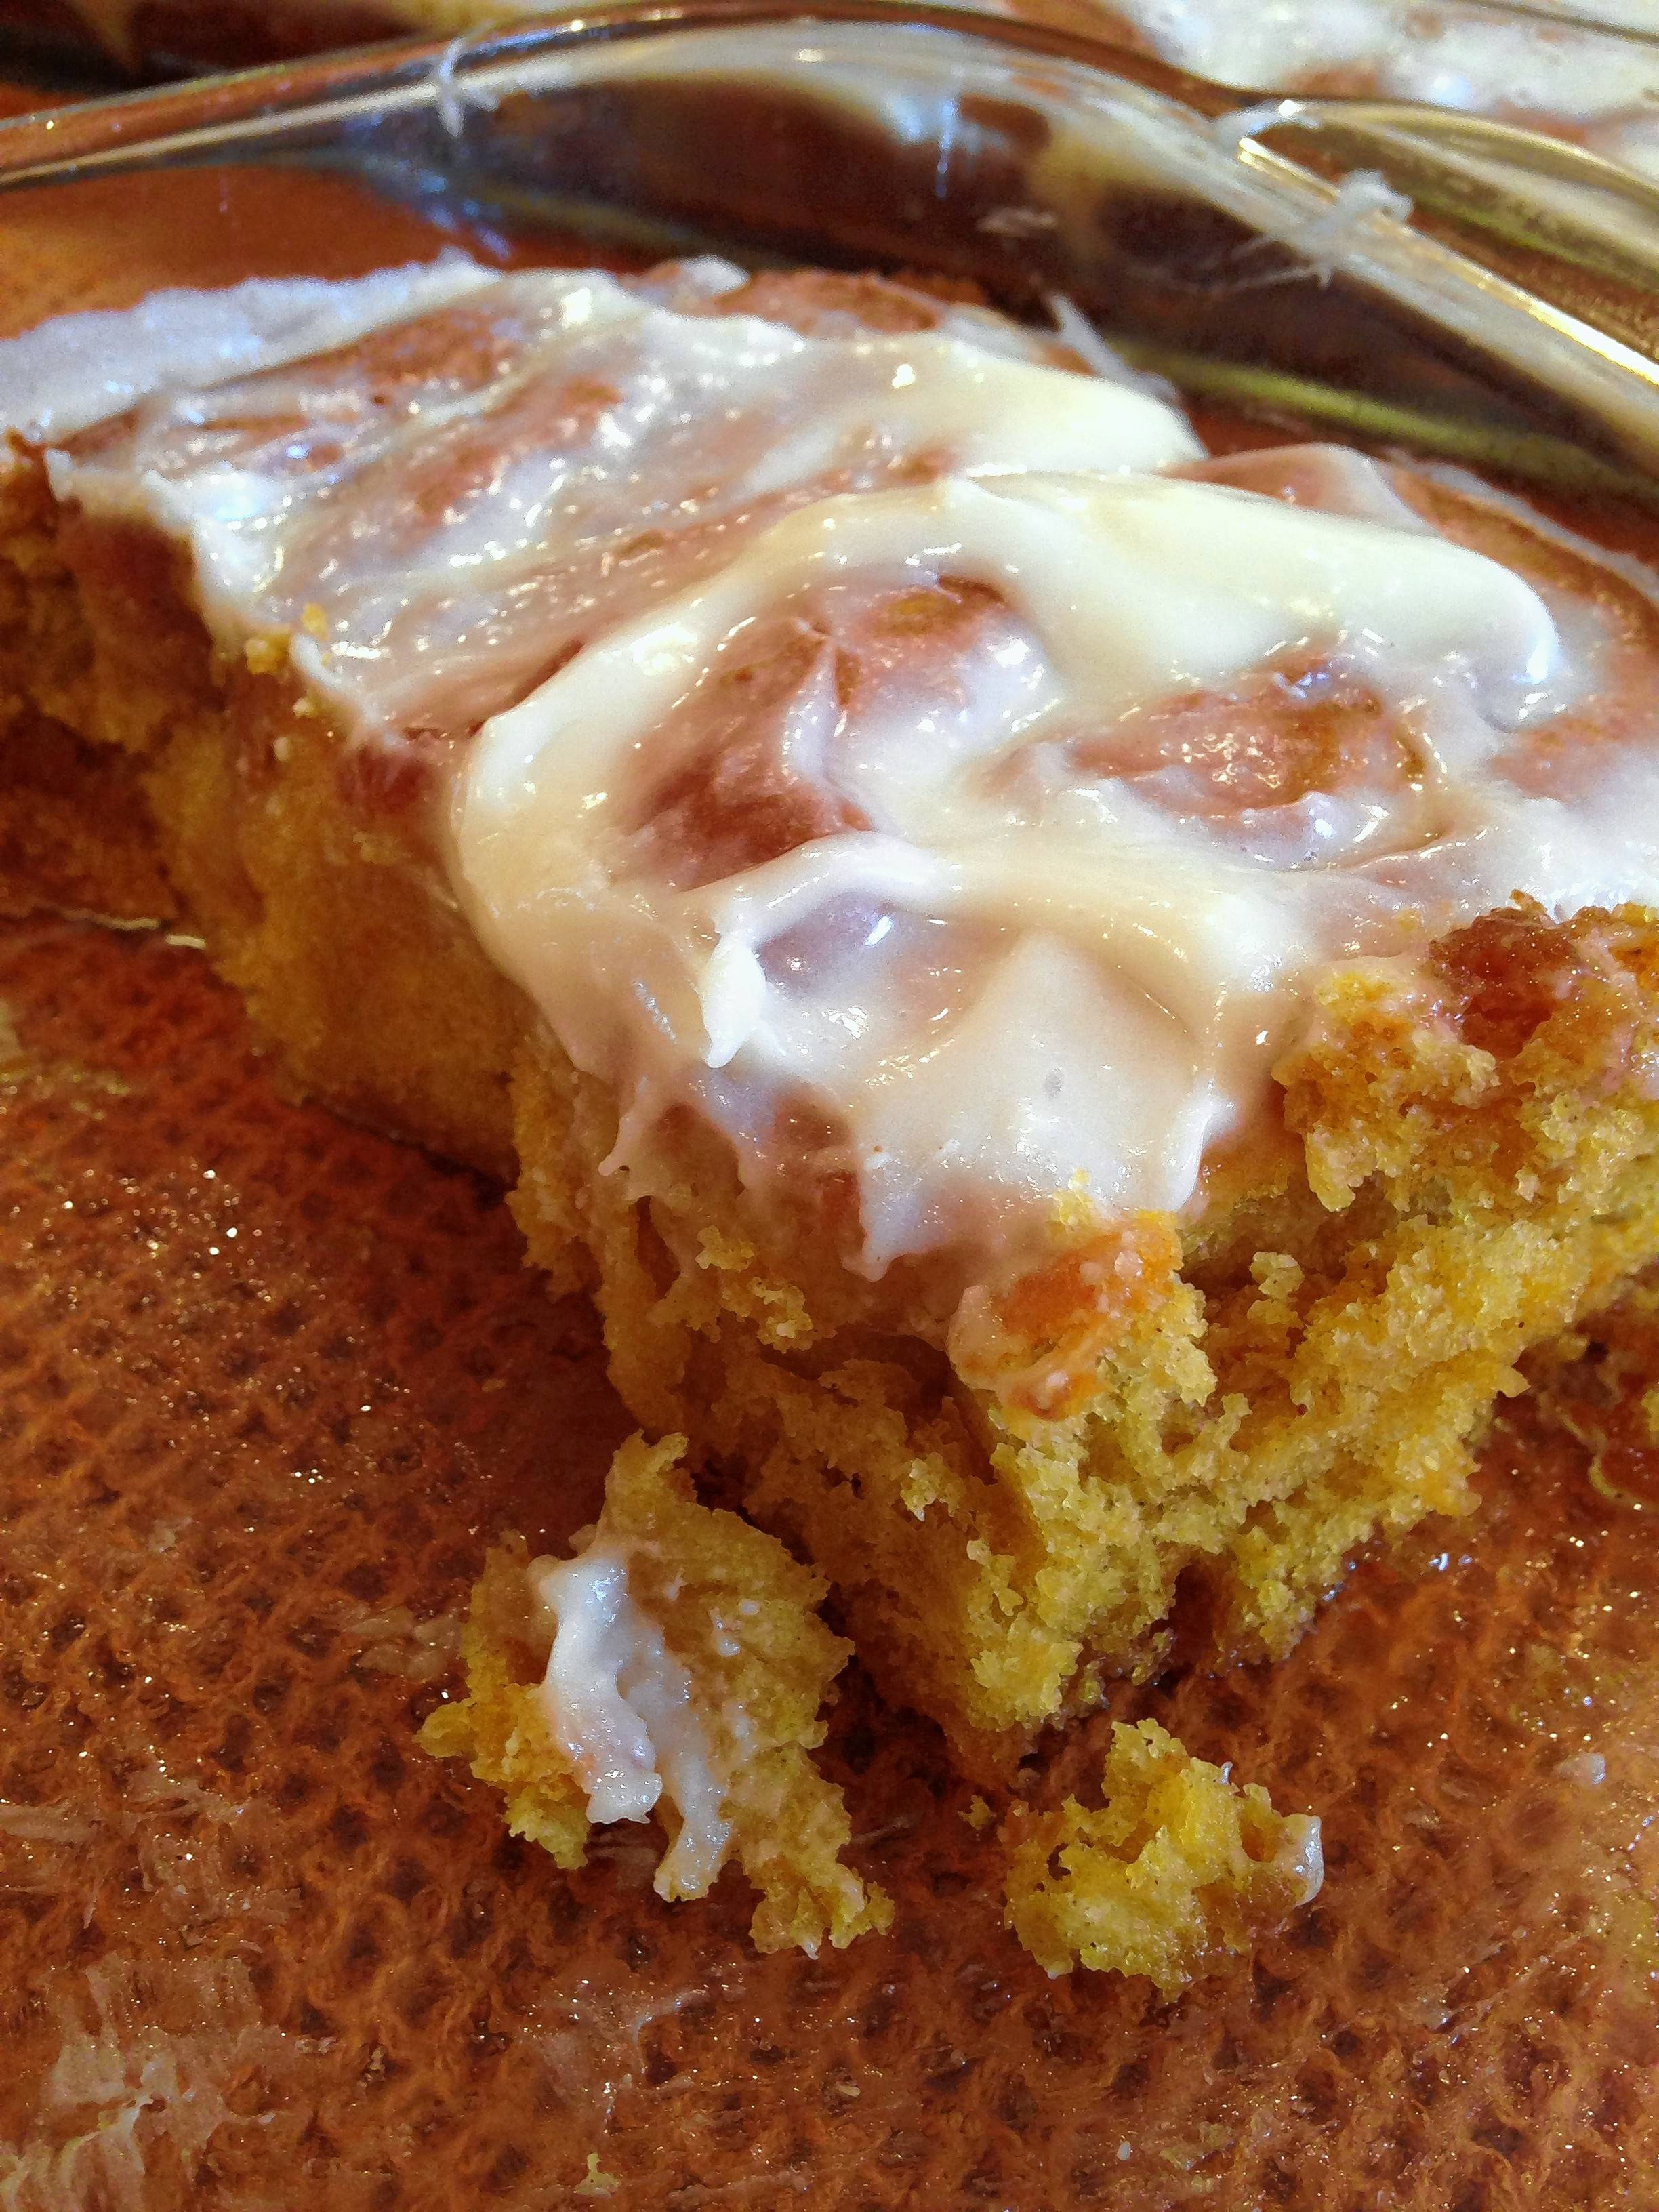 Think of these pumpkin cinnamon rolls as simply decedent seasonal comfort food.